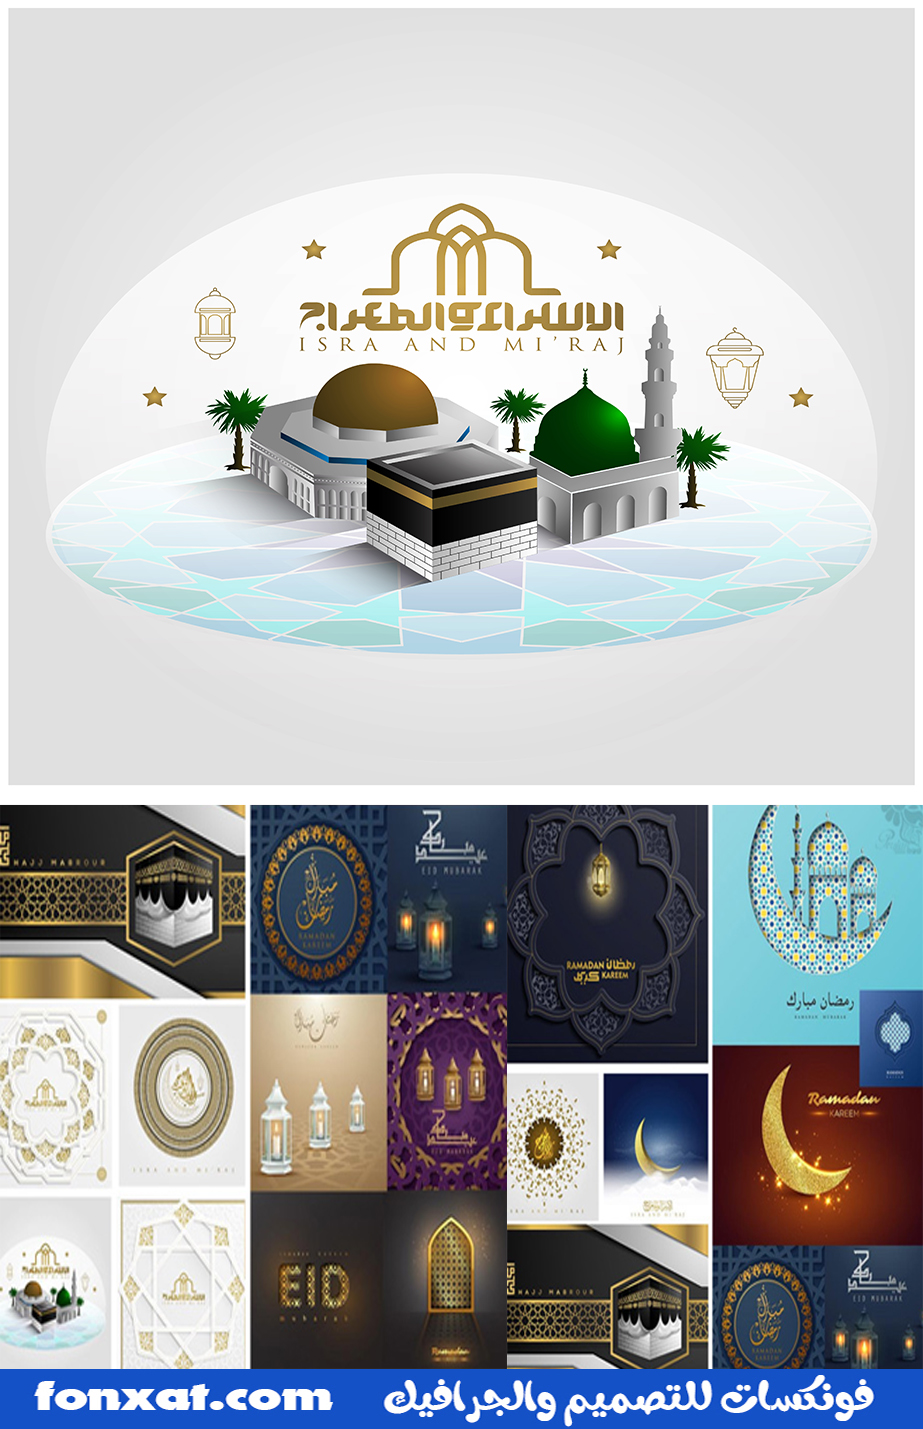 Isra.And.Miraj.Muslim.Illustrations.eps-jpg